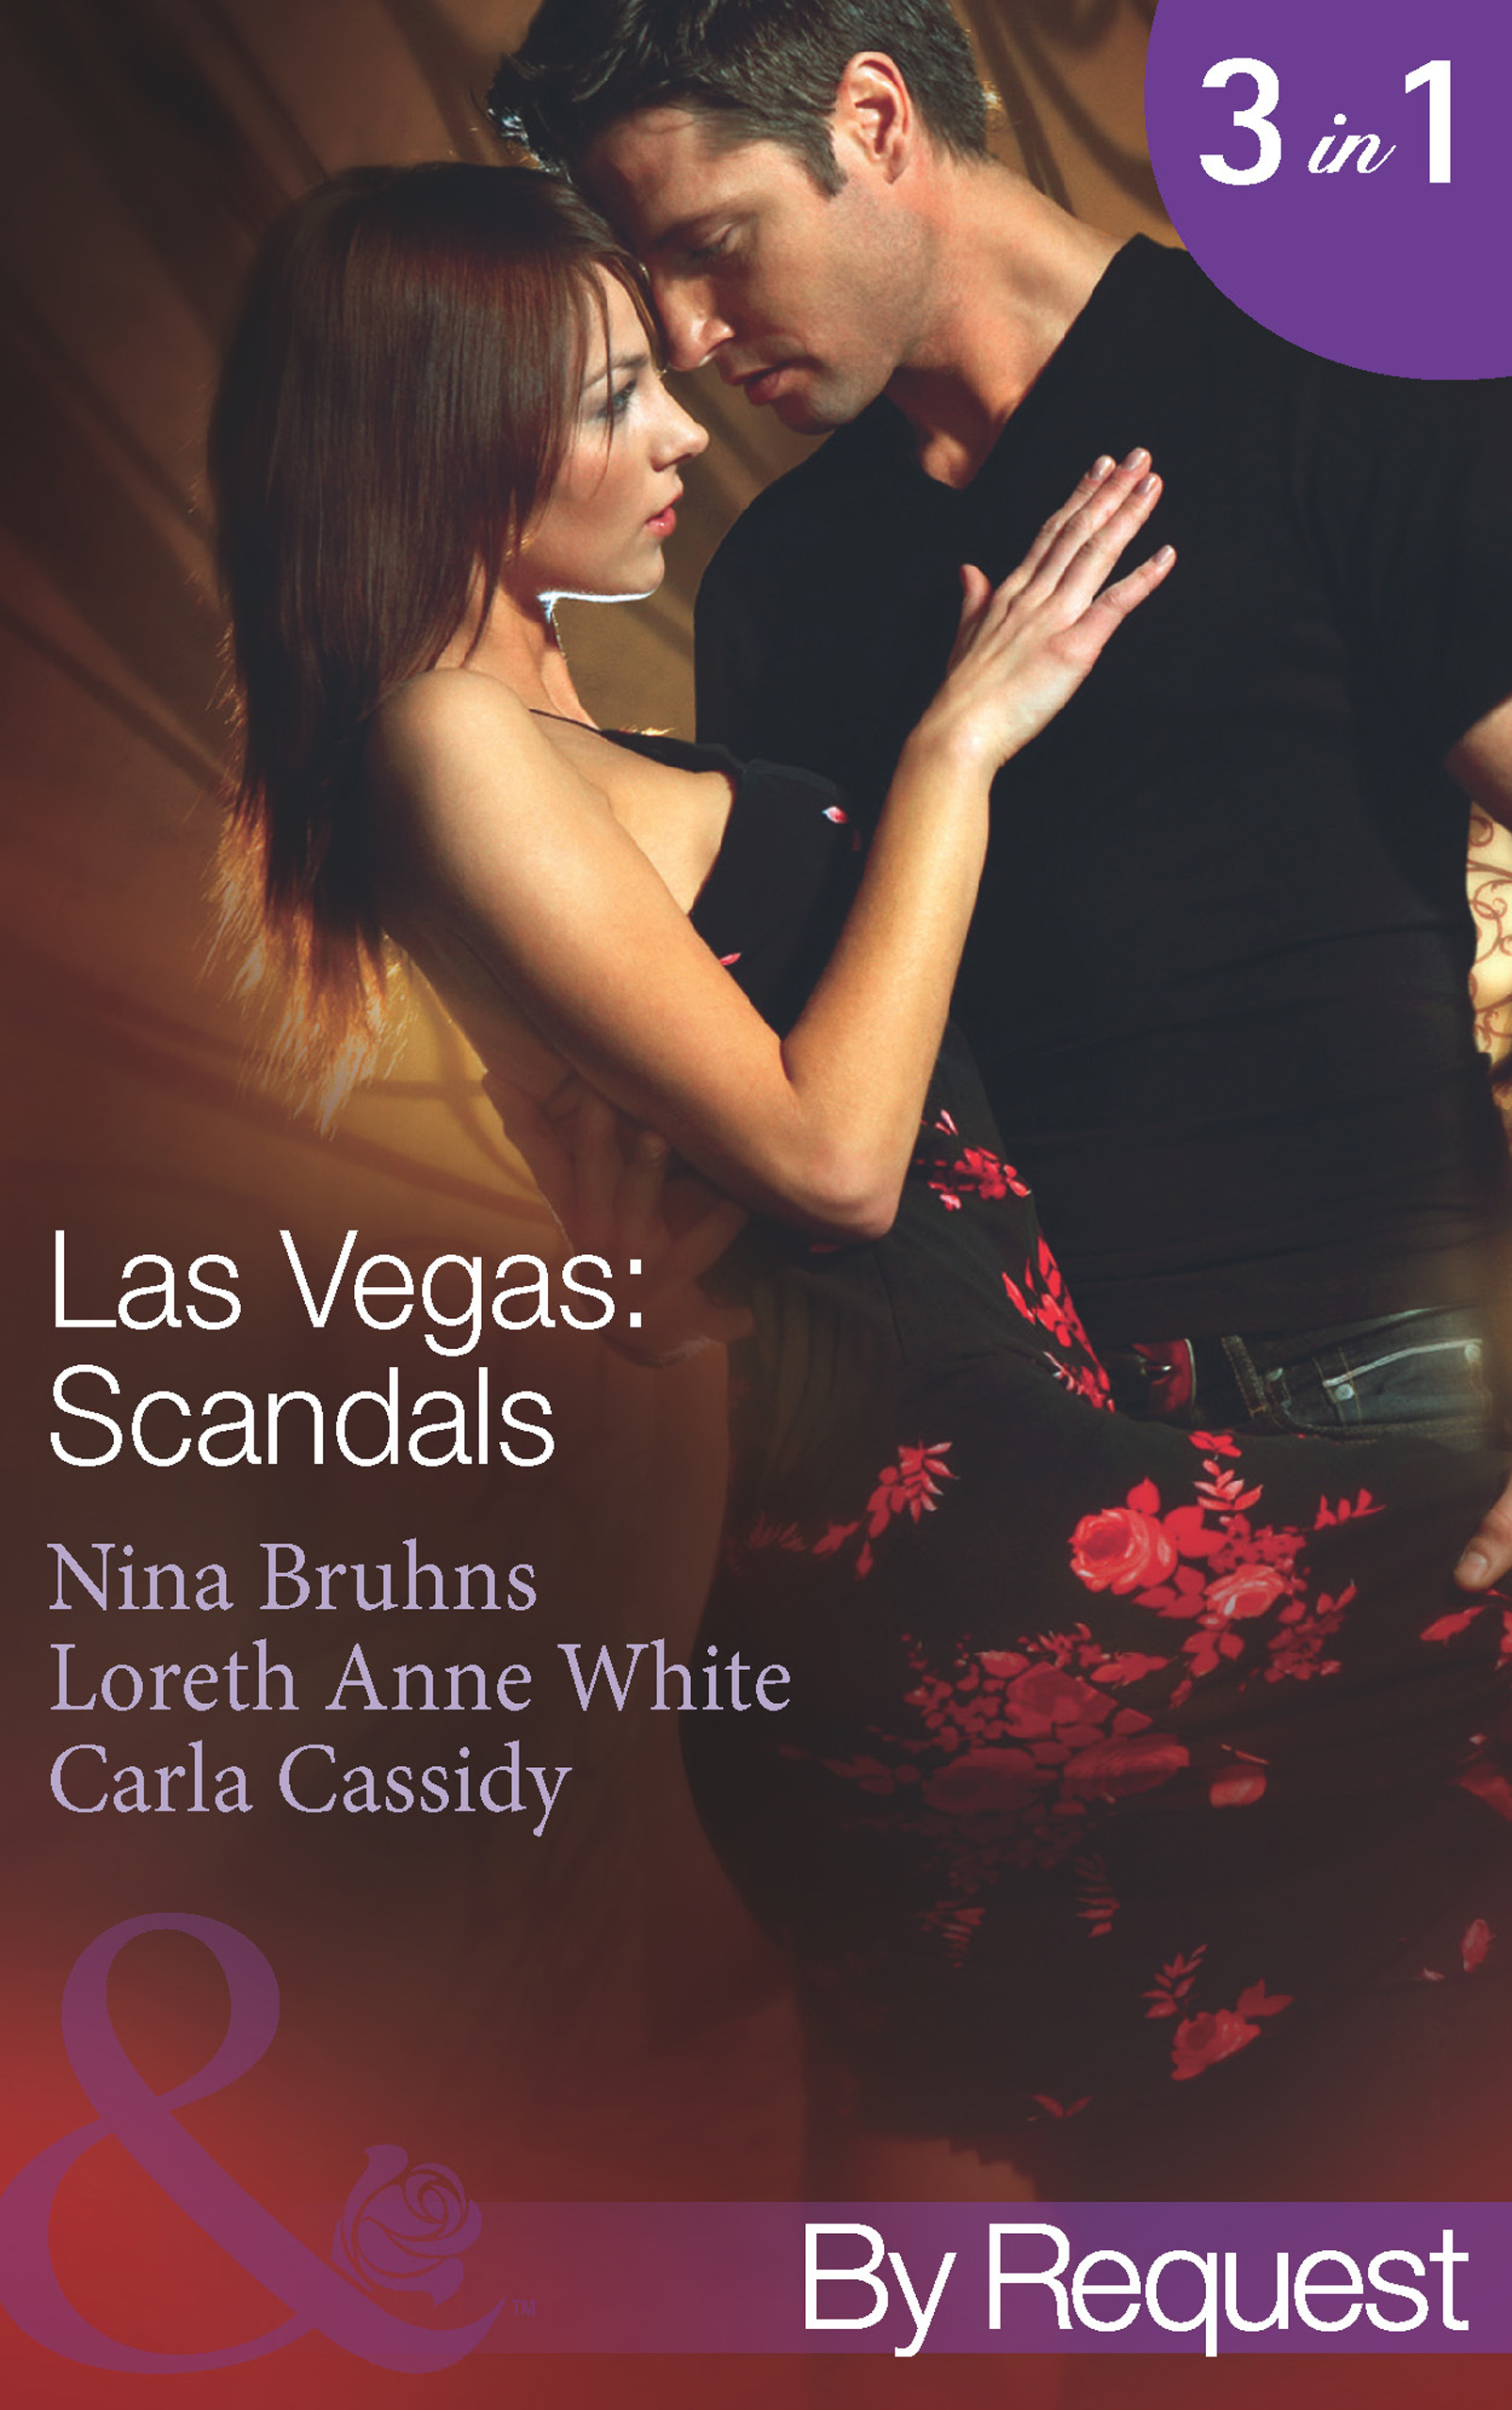 Las Vegas: Scandals: Prince Charming for 1 Night